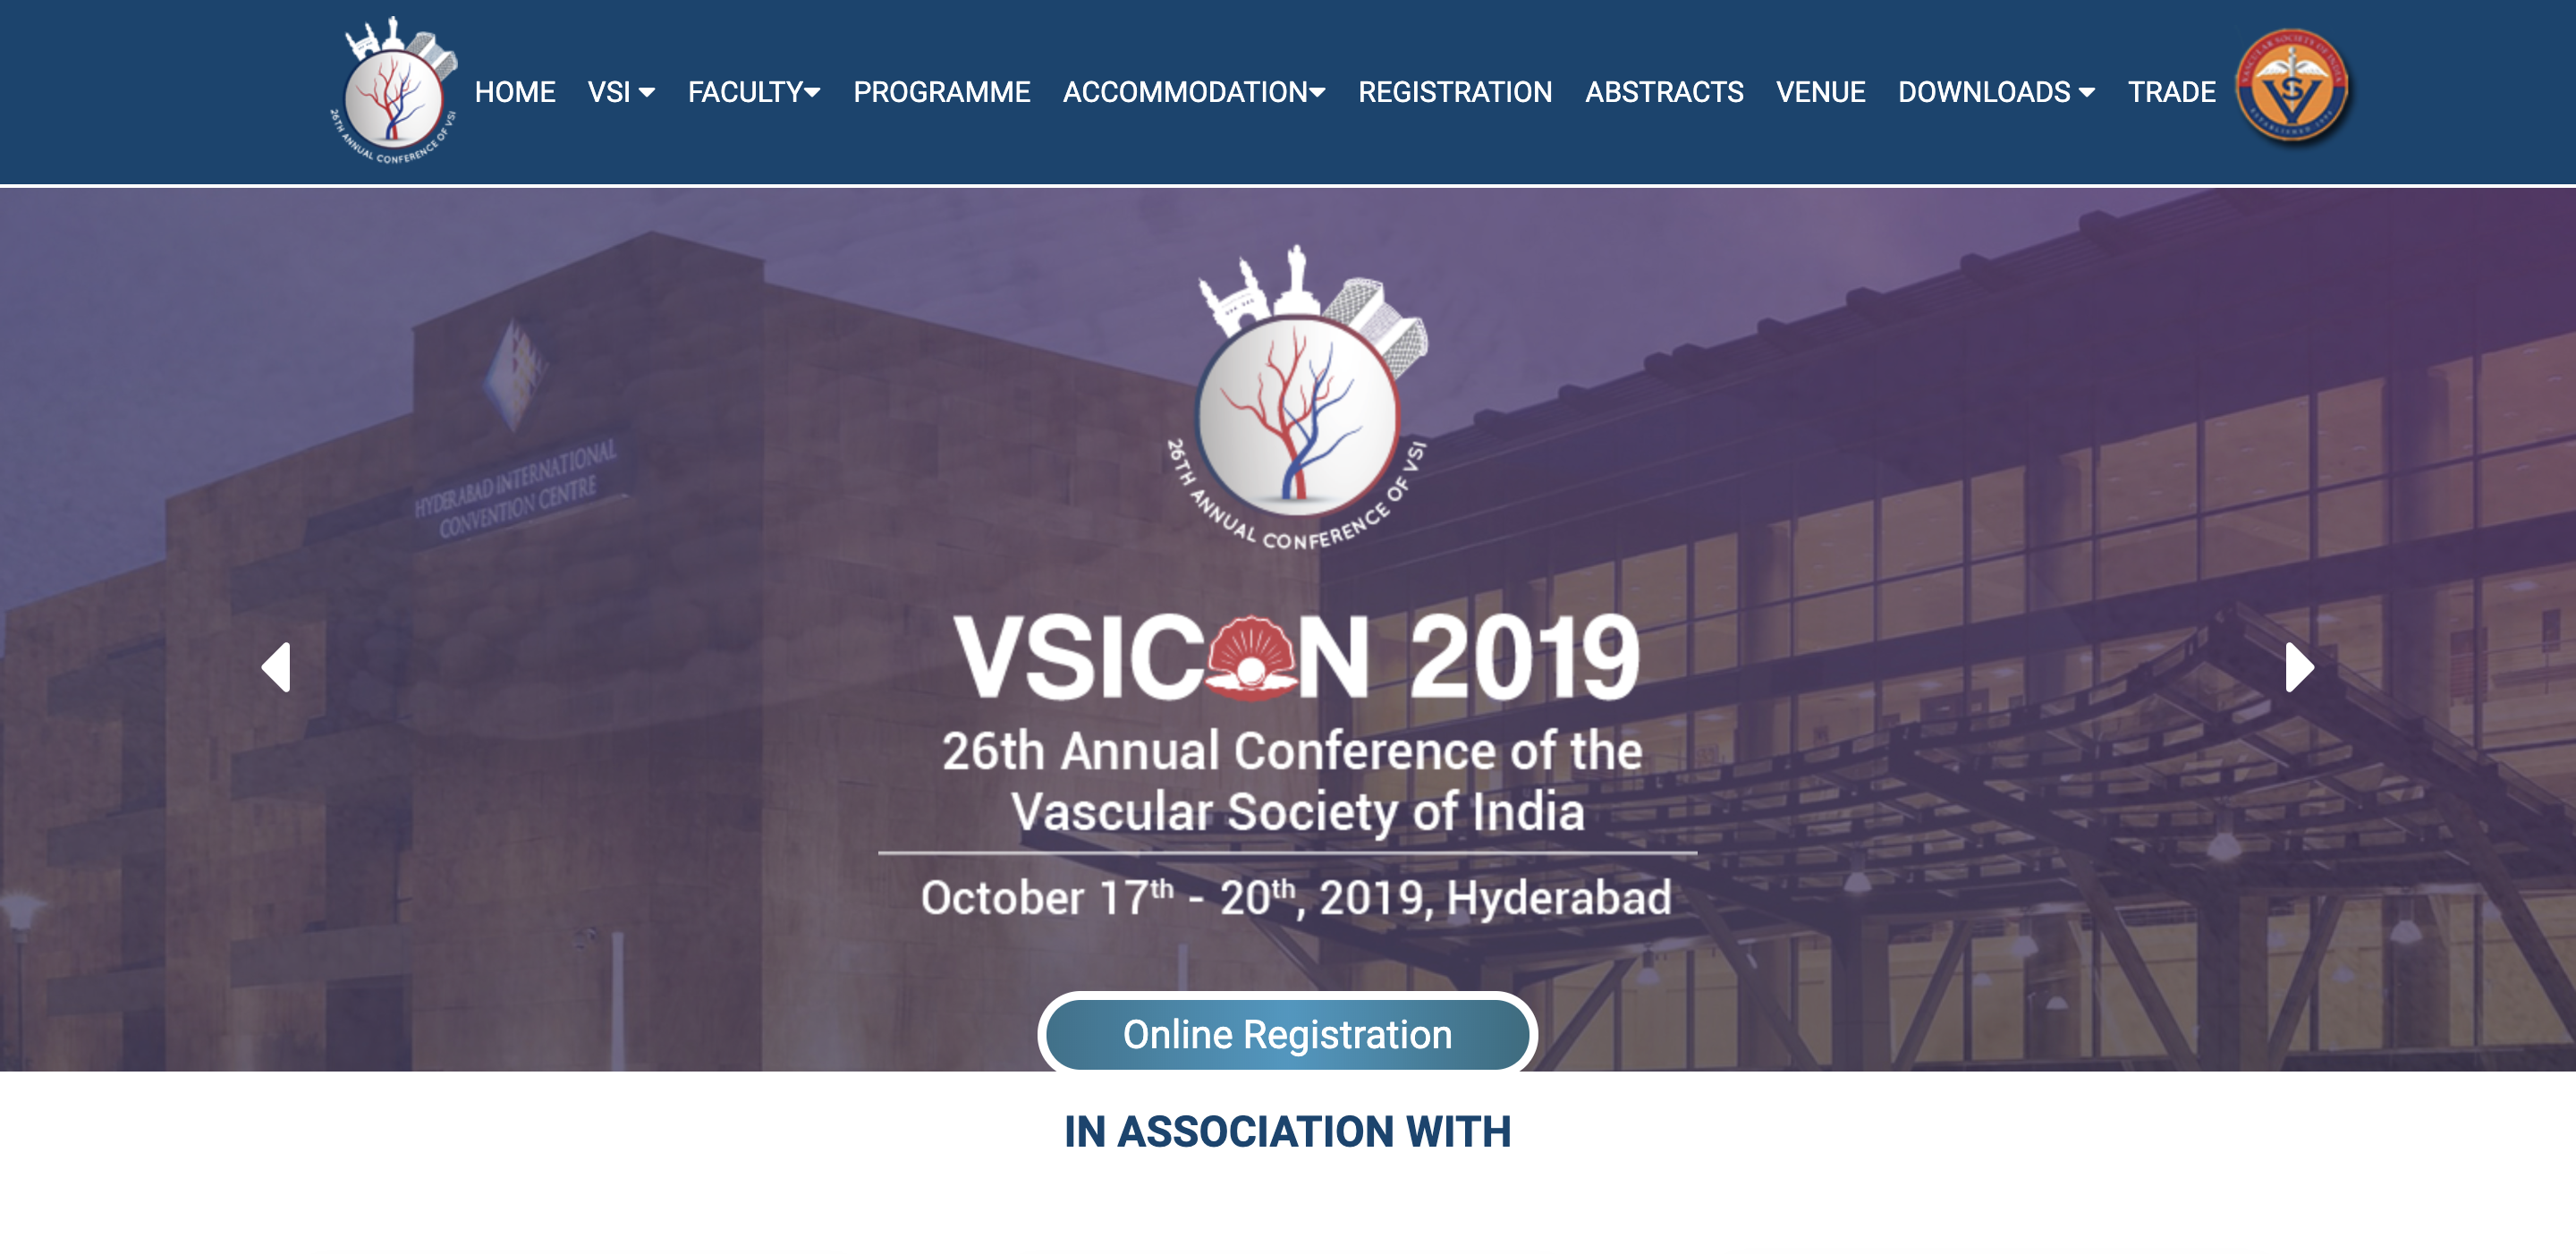 VSICON – 26th Annual Conference of the Vascular Society of India